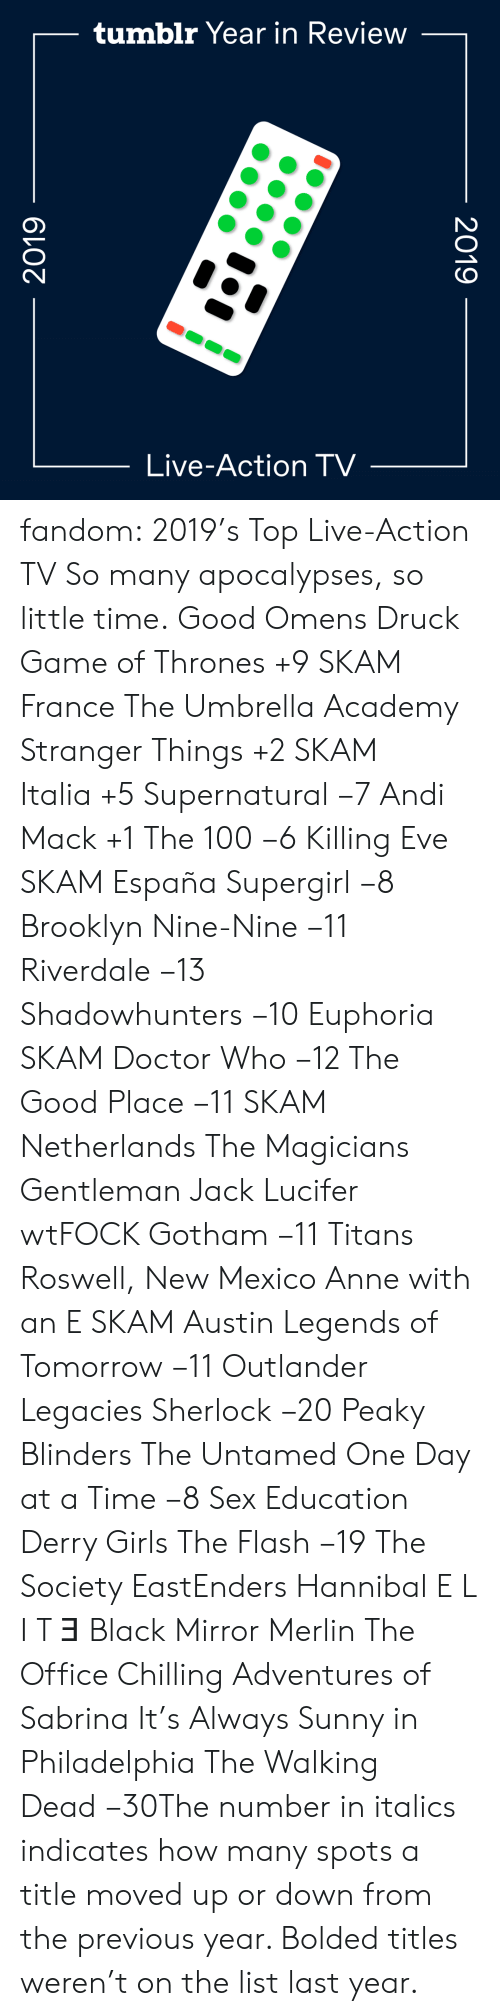 Austin: tumblr Year in Review  Live-Action TV-  2019  2019 fandom:  2019's Top Live-Action TV  So many apocalypses, so little time.  Good Omens  Druck  Game of Thrones +9  SKAM France  The Umbrella Academy  Stranger Things +2  SKAM Italia +5  Supernatural −7  Andi Mack +1  The 100 −6  Killing Eve   SKAM España  Supergirl −8  Brooklyn Nine-Nine −11  Riverdale −13  Shadowhunters −10  Euphoria  SKAM  Doctor Who −12  The Good Place −11  SKAM Netherlands  The Magicians  Gentleman Jack  Lucifer  wtFOCK  Gotham −11  Titans  Roswell, New Mexico  Anne with an E  SKAM Austin  Legends of Tomorrow −11  Outlander  Legacies  Sherlock −20  Peaky Blinders  The Untamed  One Day at a Time −8  Sex Education  Derry Girls  The Flash −19  The Society  EastEnders  Hannibal  E L I T Ǝ  Black Mirror  Merlin  The Office  Chilling Adventures of Sabrina  It's Always Sunny in Philadelphia The Walking Dead −30The number in italics indicates how many spots a title moved up or down from the previous year. Bolded titles weren't on the list last year.